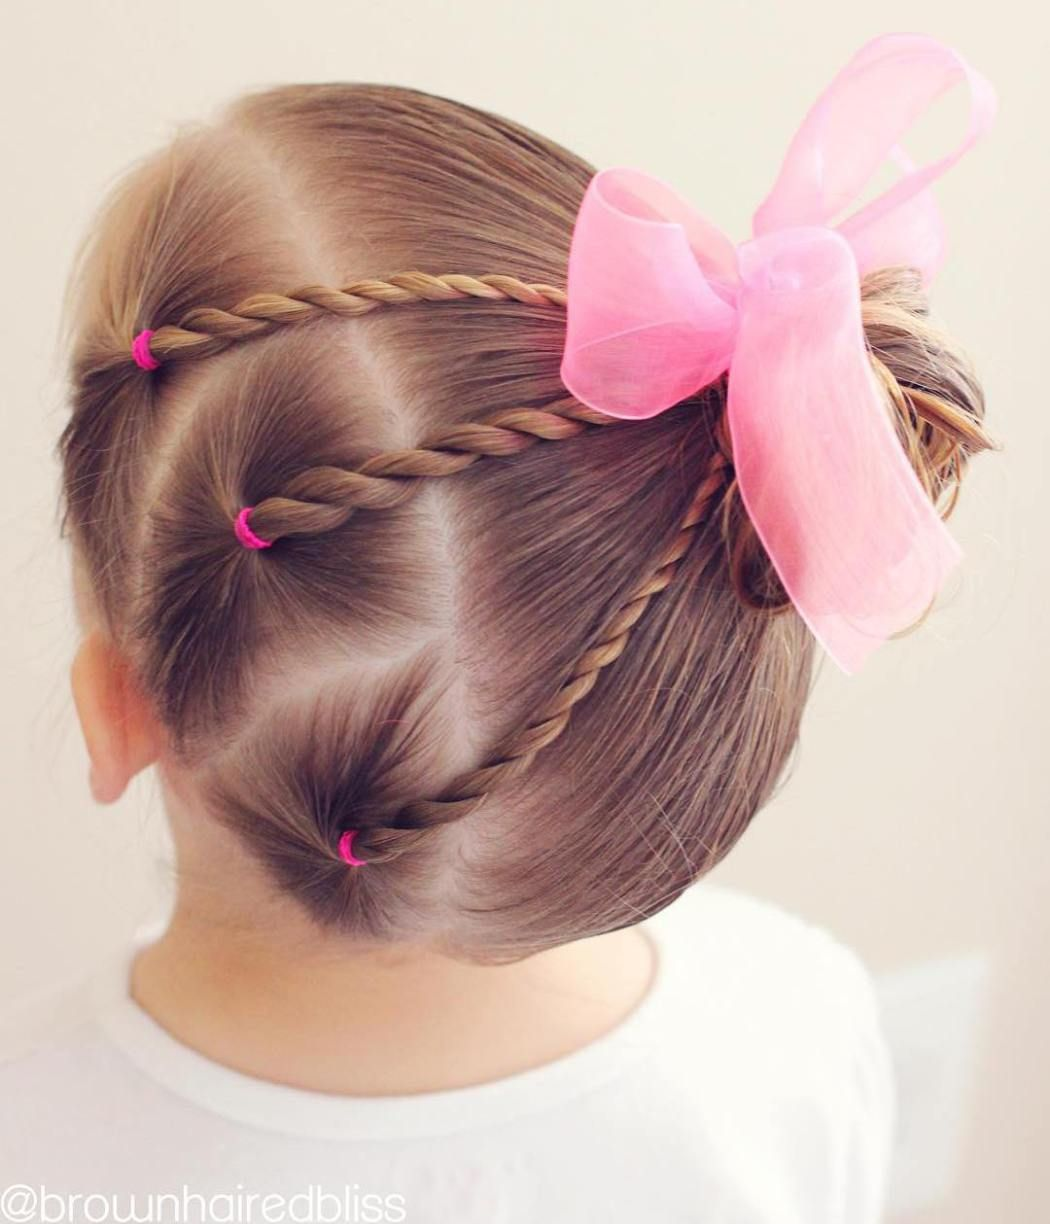 Hairstyles For Toddlers Adorable 40 Cool Hairstyles For Little Girls On Any Occasion  Pinterest